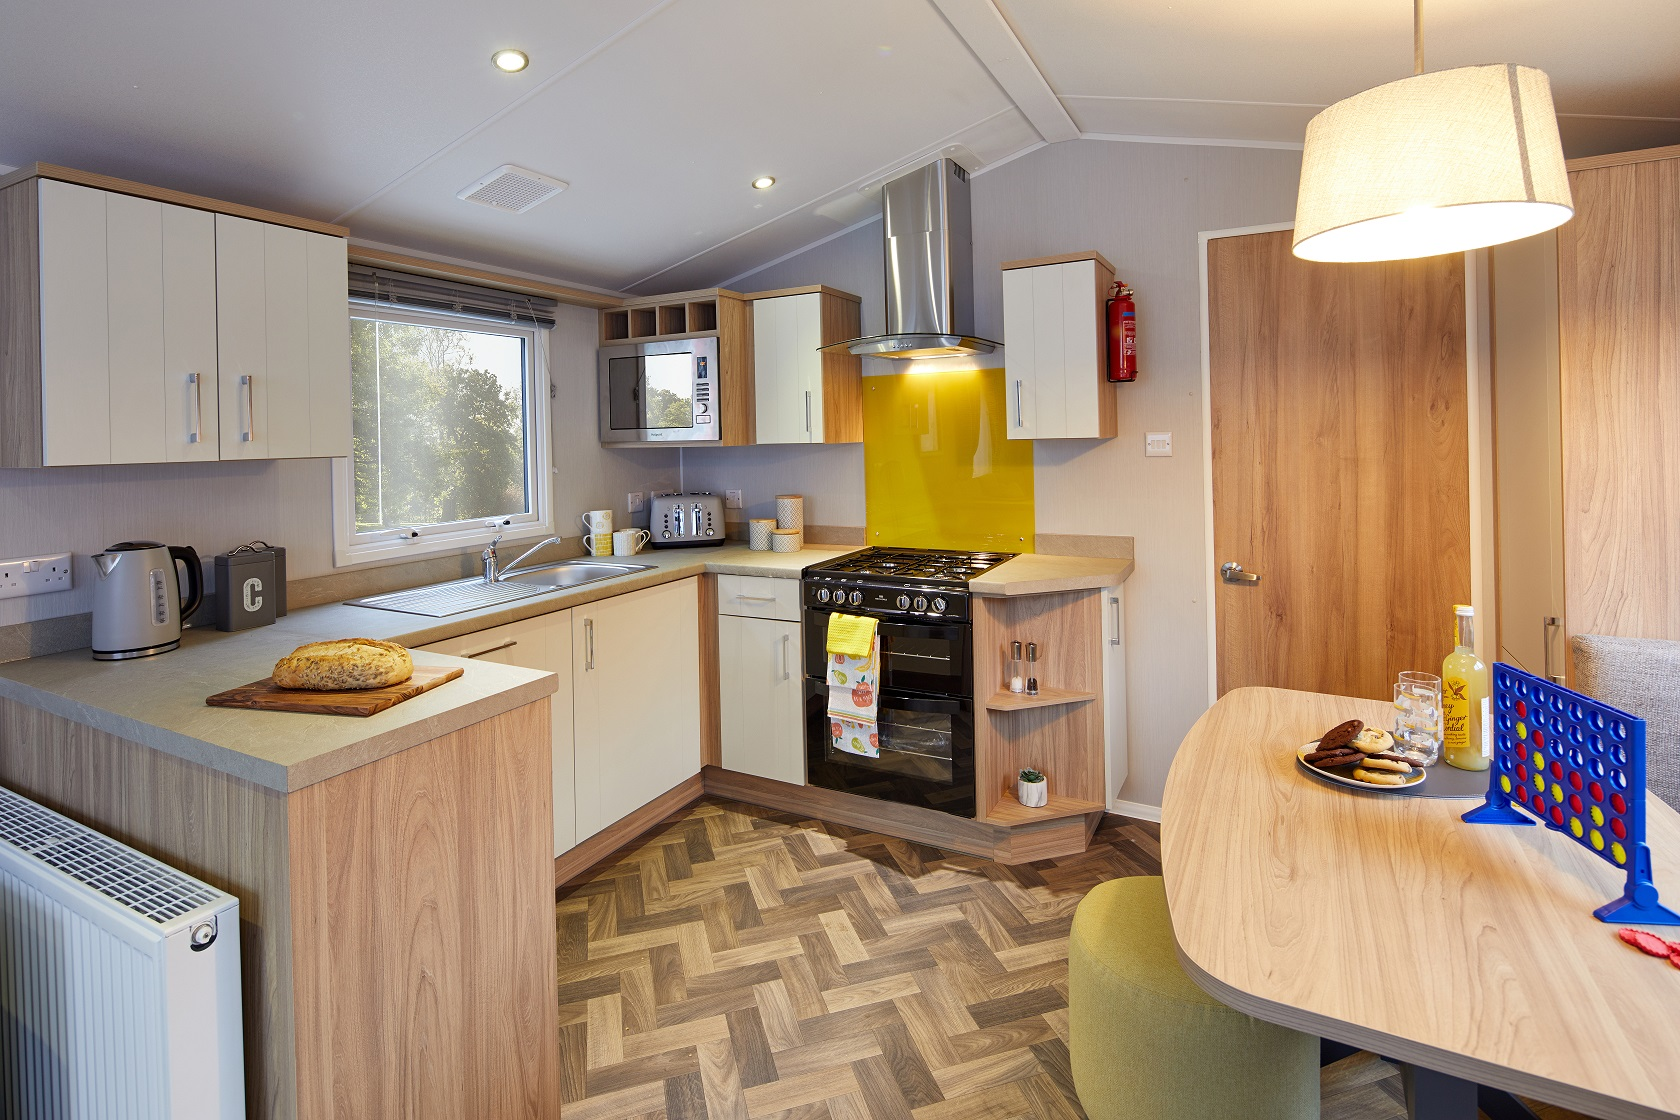 Willerby Castleton: Static Caravans and Holiday Homes for Sale on Caravan Parks, Barnard Castle, Durham and Weardale Large Image 3